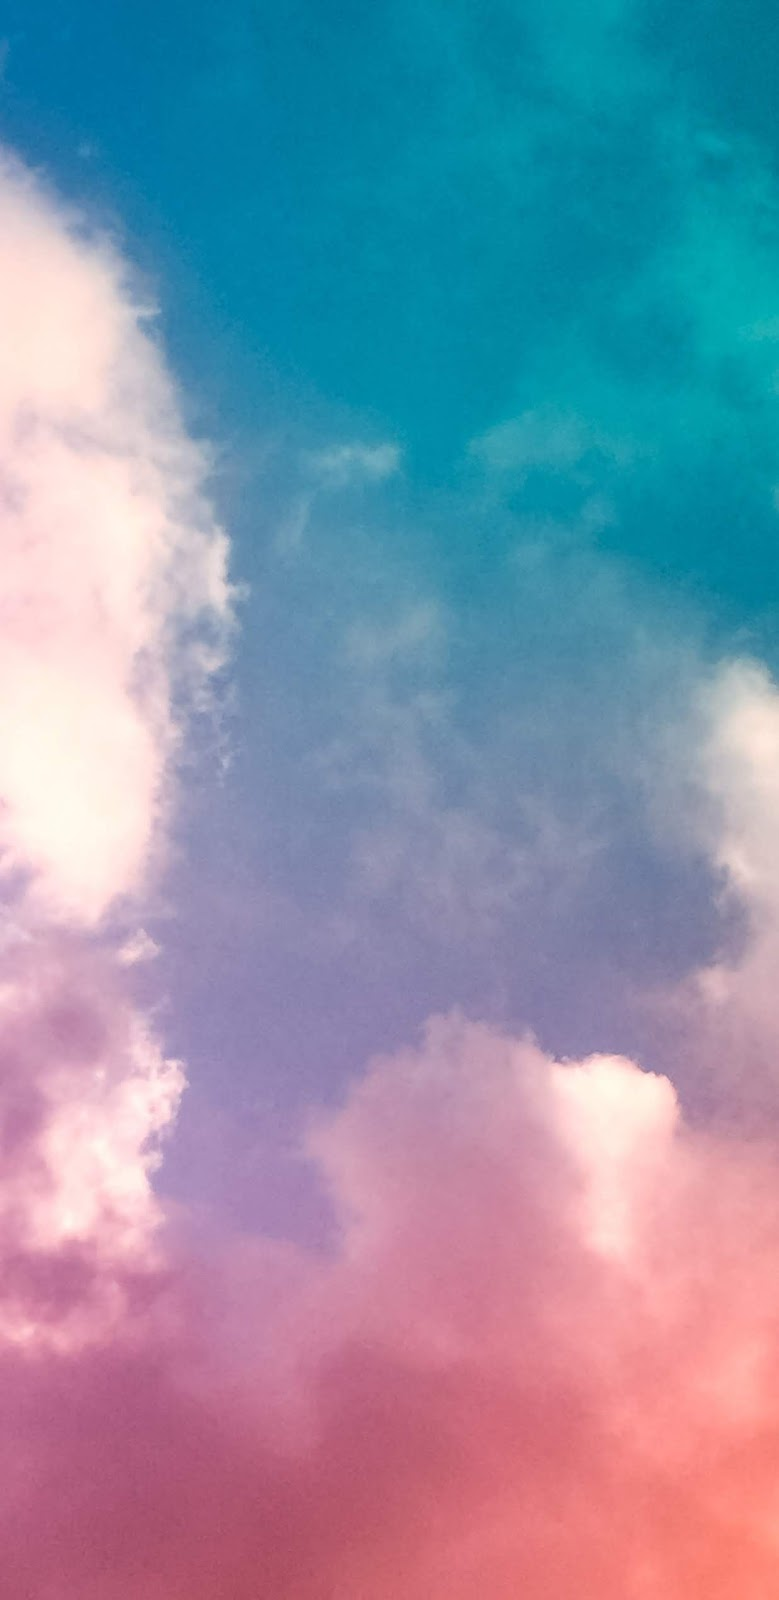 Colorful sky wallpaper